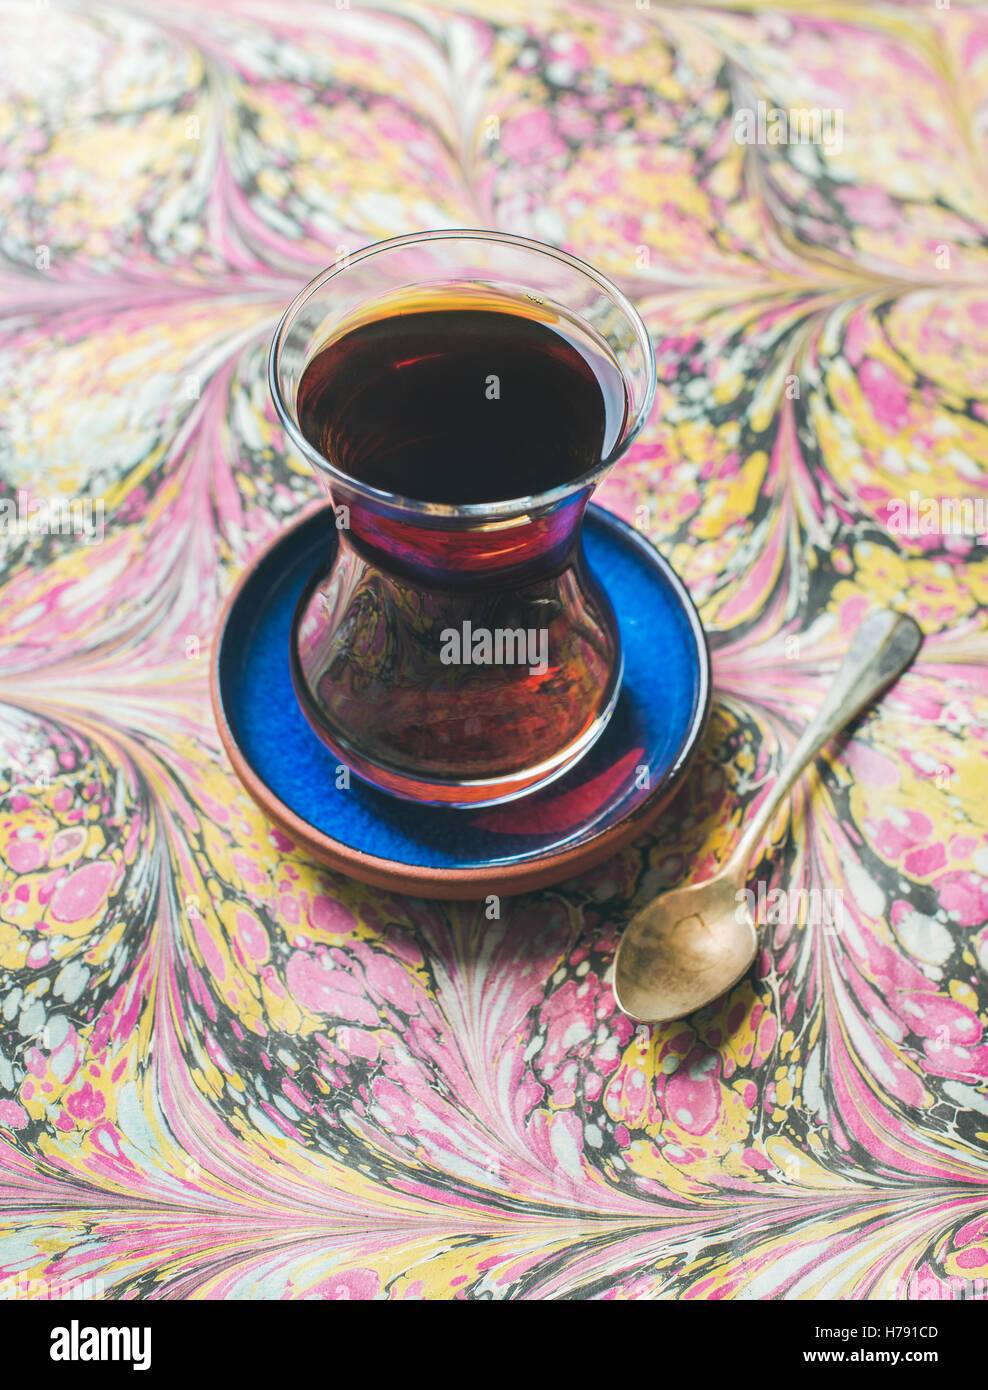 Turkish tea in traditional oriental tulip glass over colorful background - Stock Image